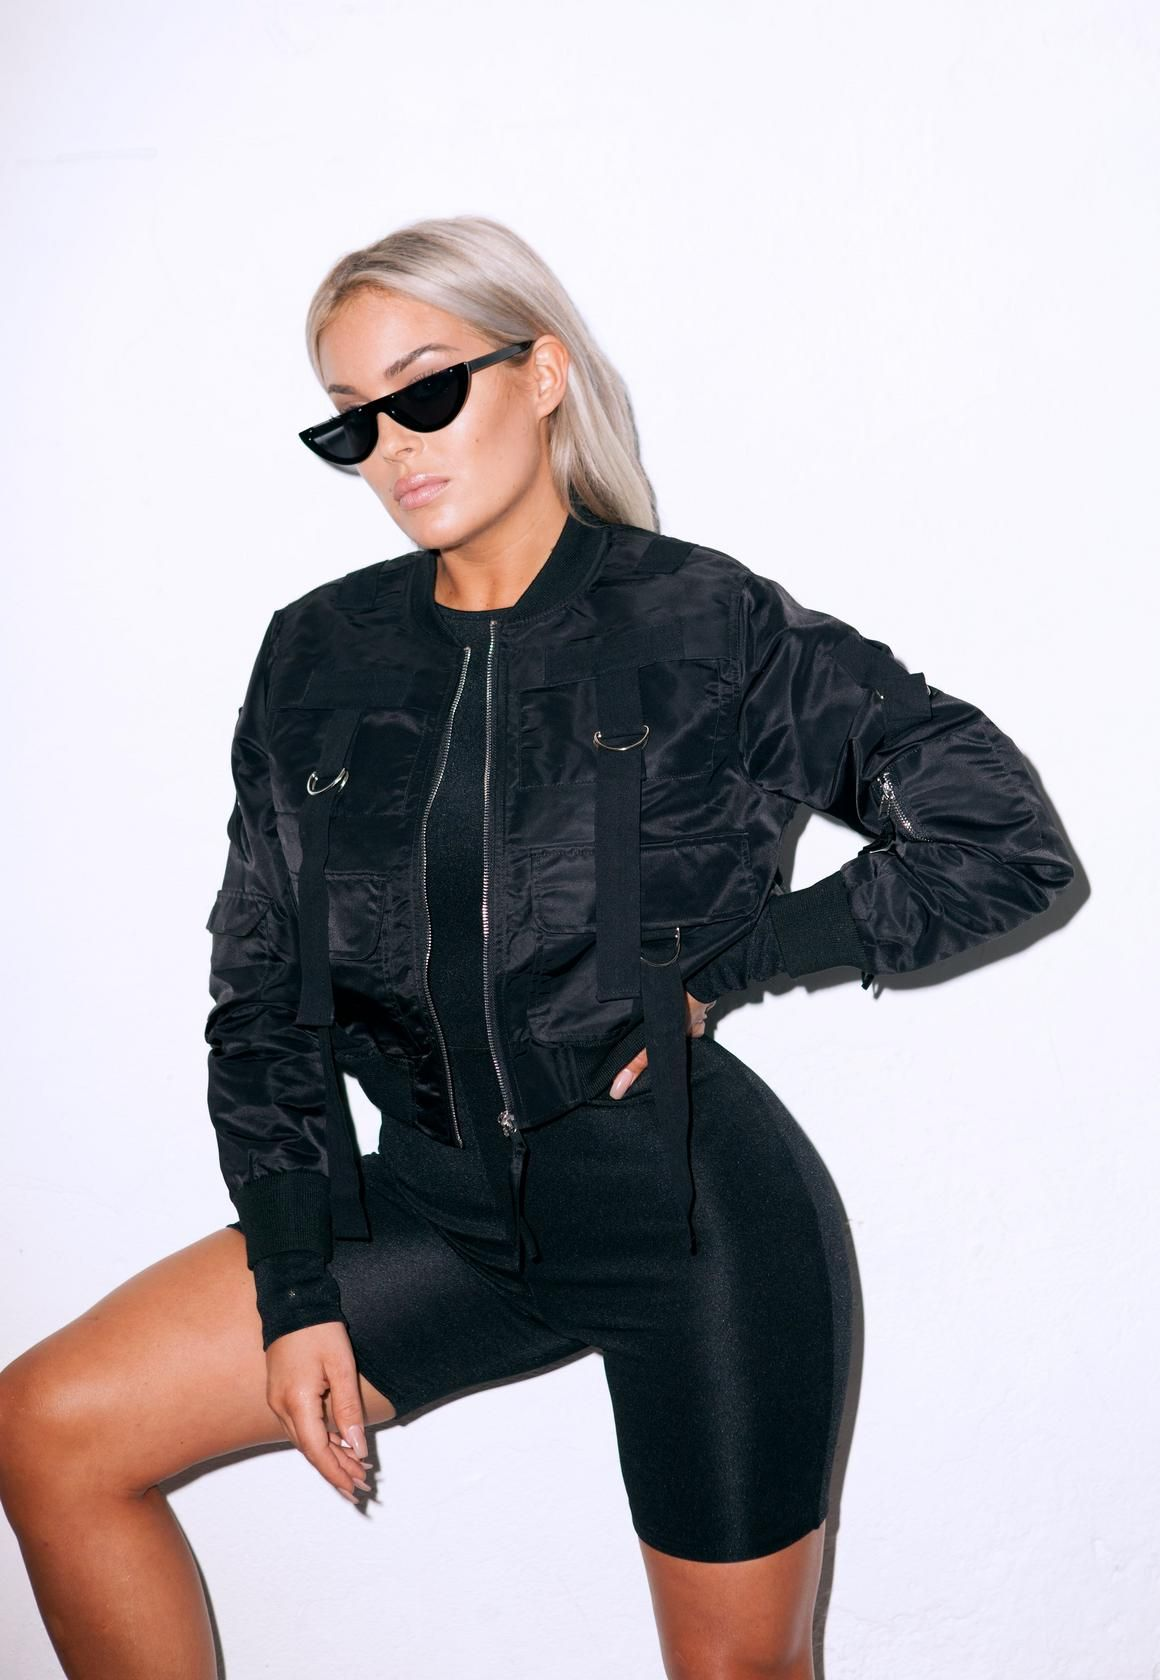 fdb3b5074fe Fanny Lyckman x Missguided Black Cropped Bomber Jacket | Missguided ...